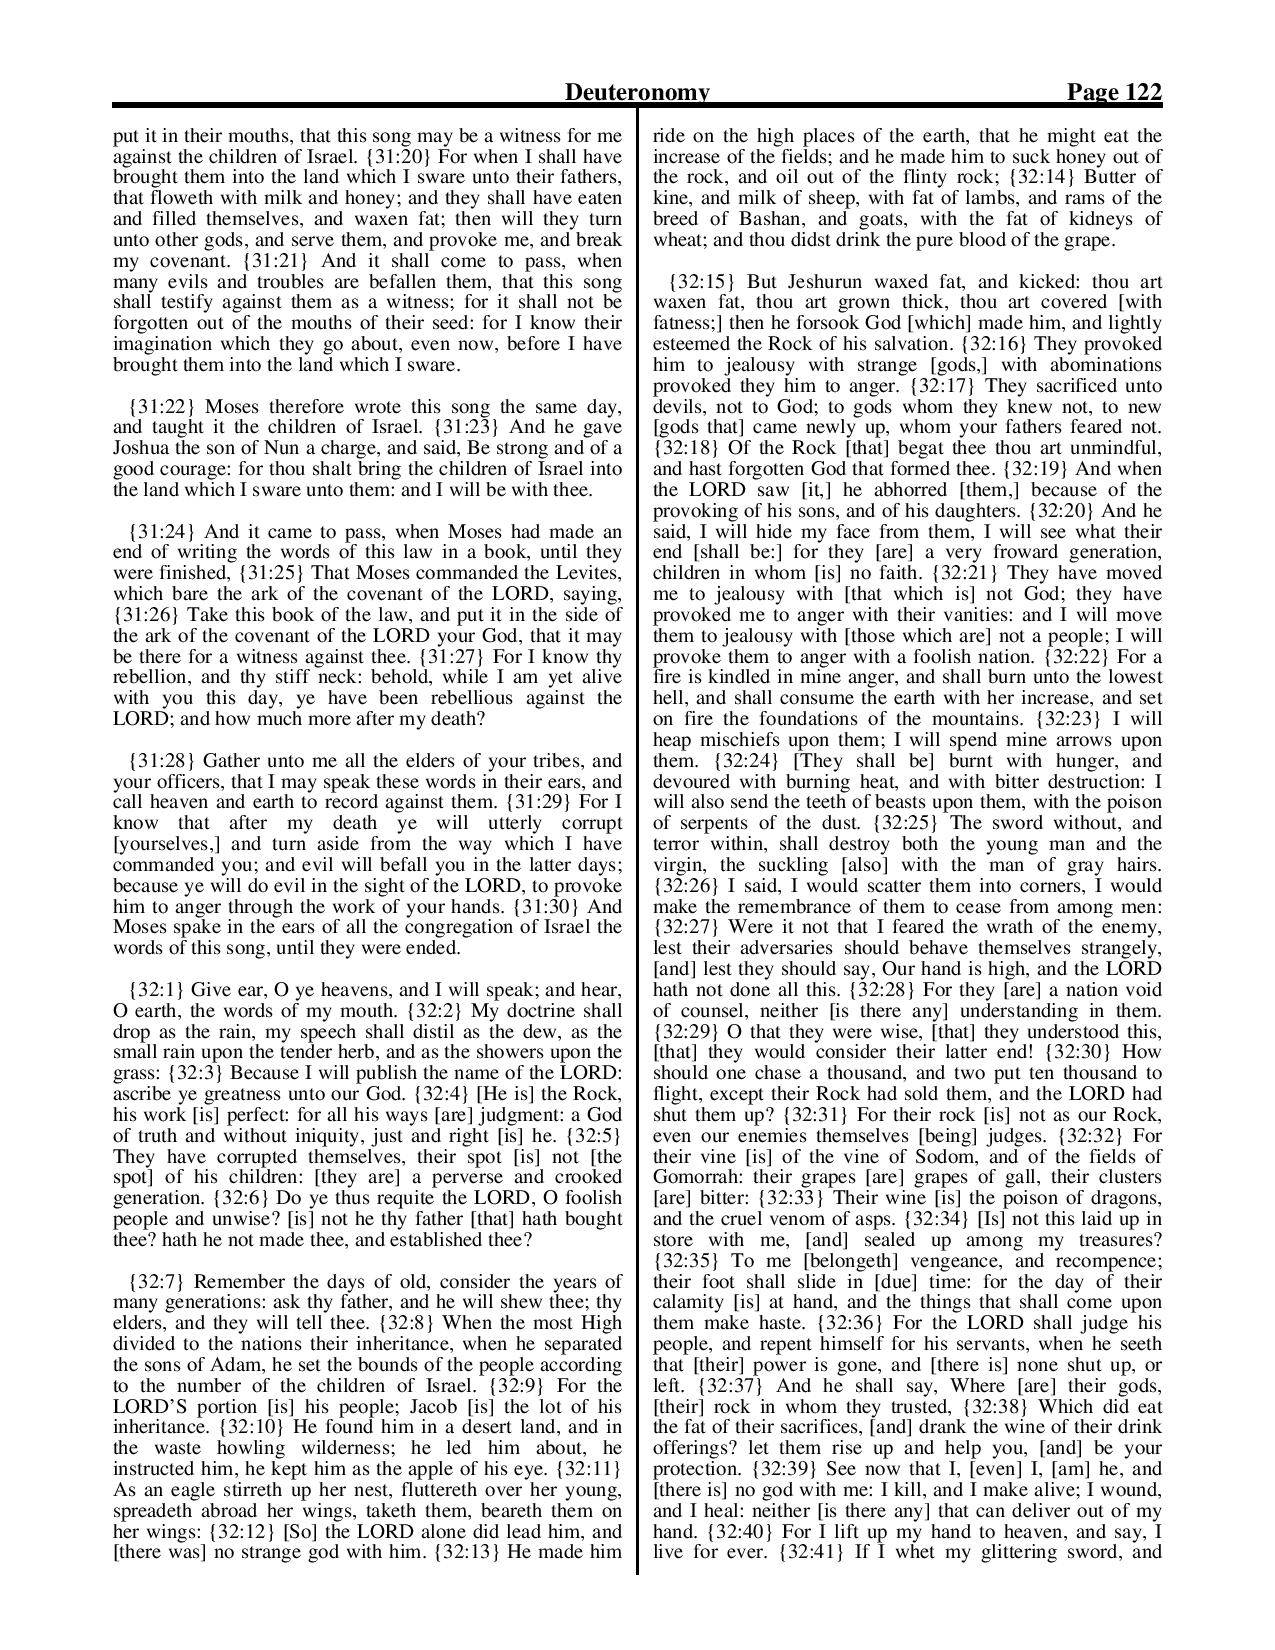 King-James-Bible-KJV-Bible-PDF-page-143